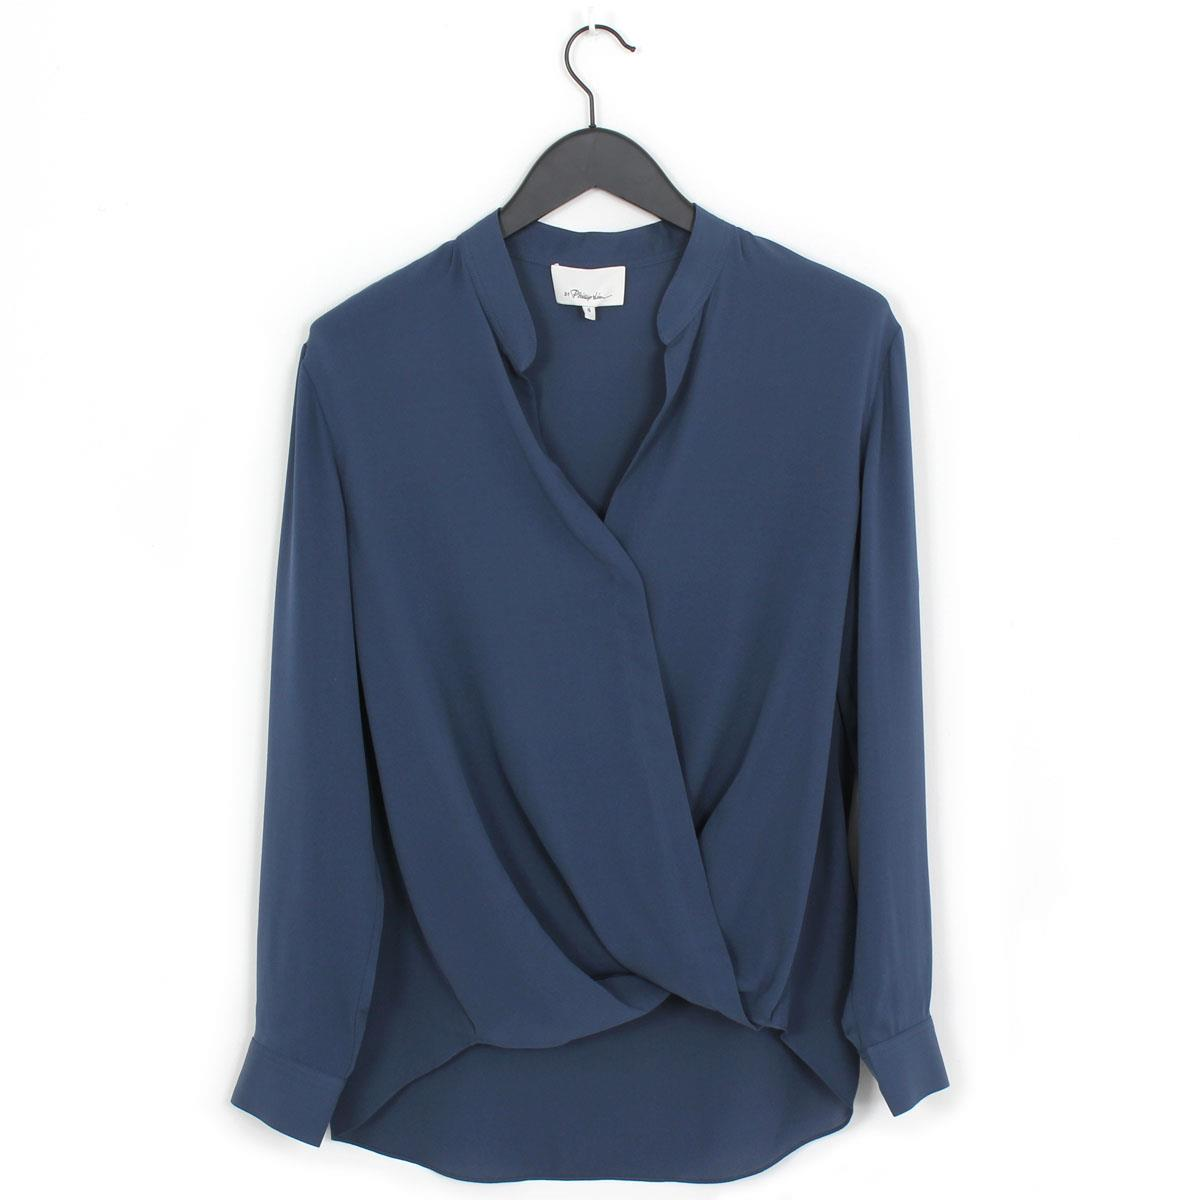 res lucky draped shirt hi brand drapes blouse